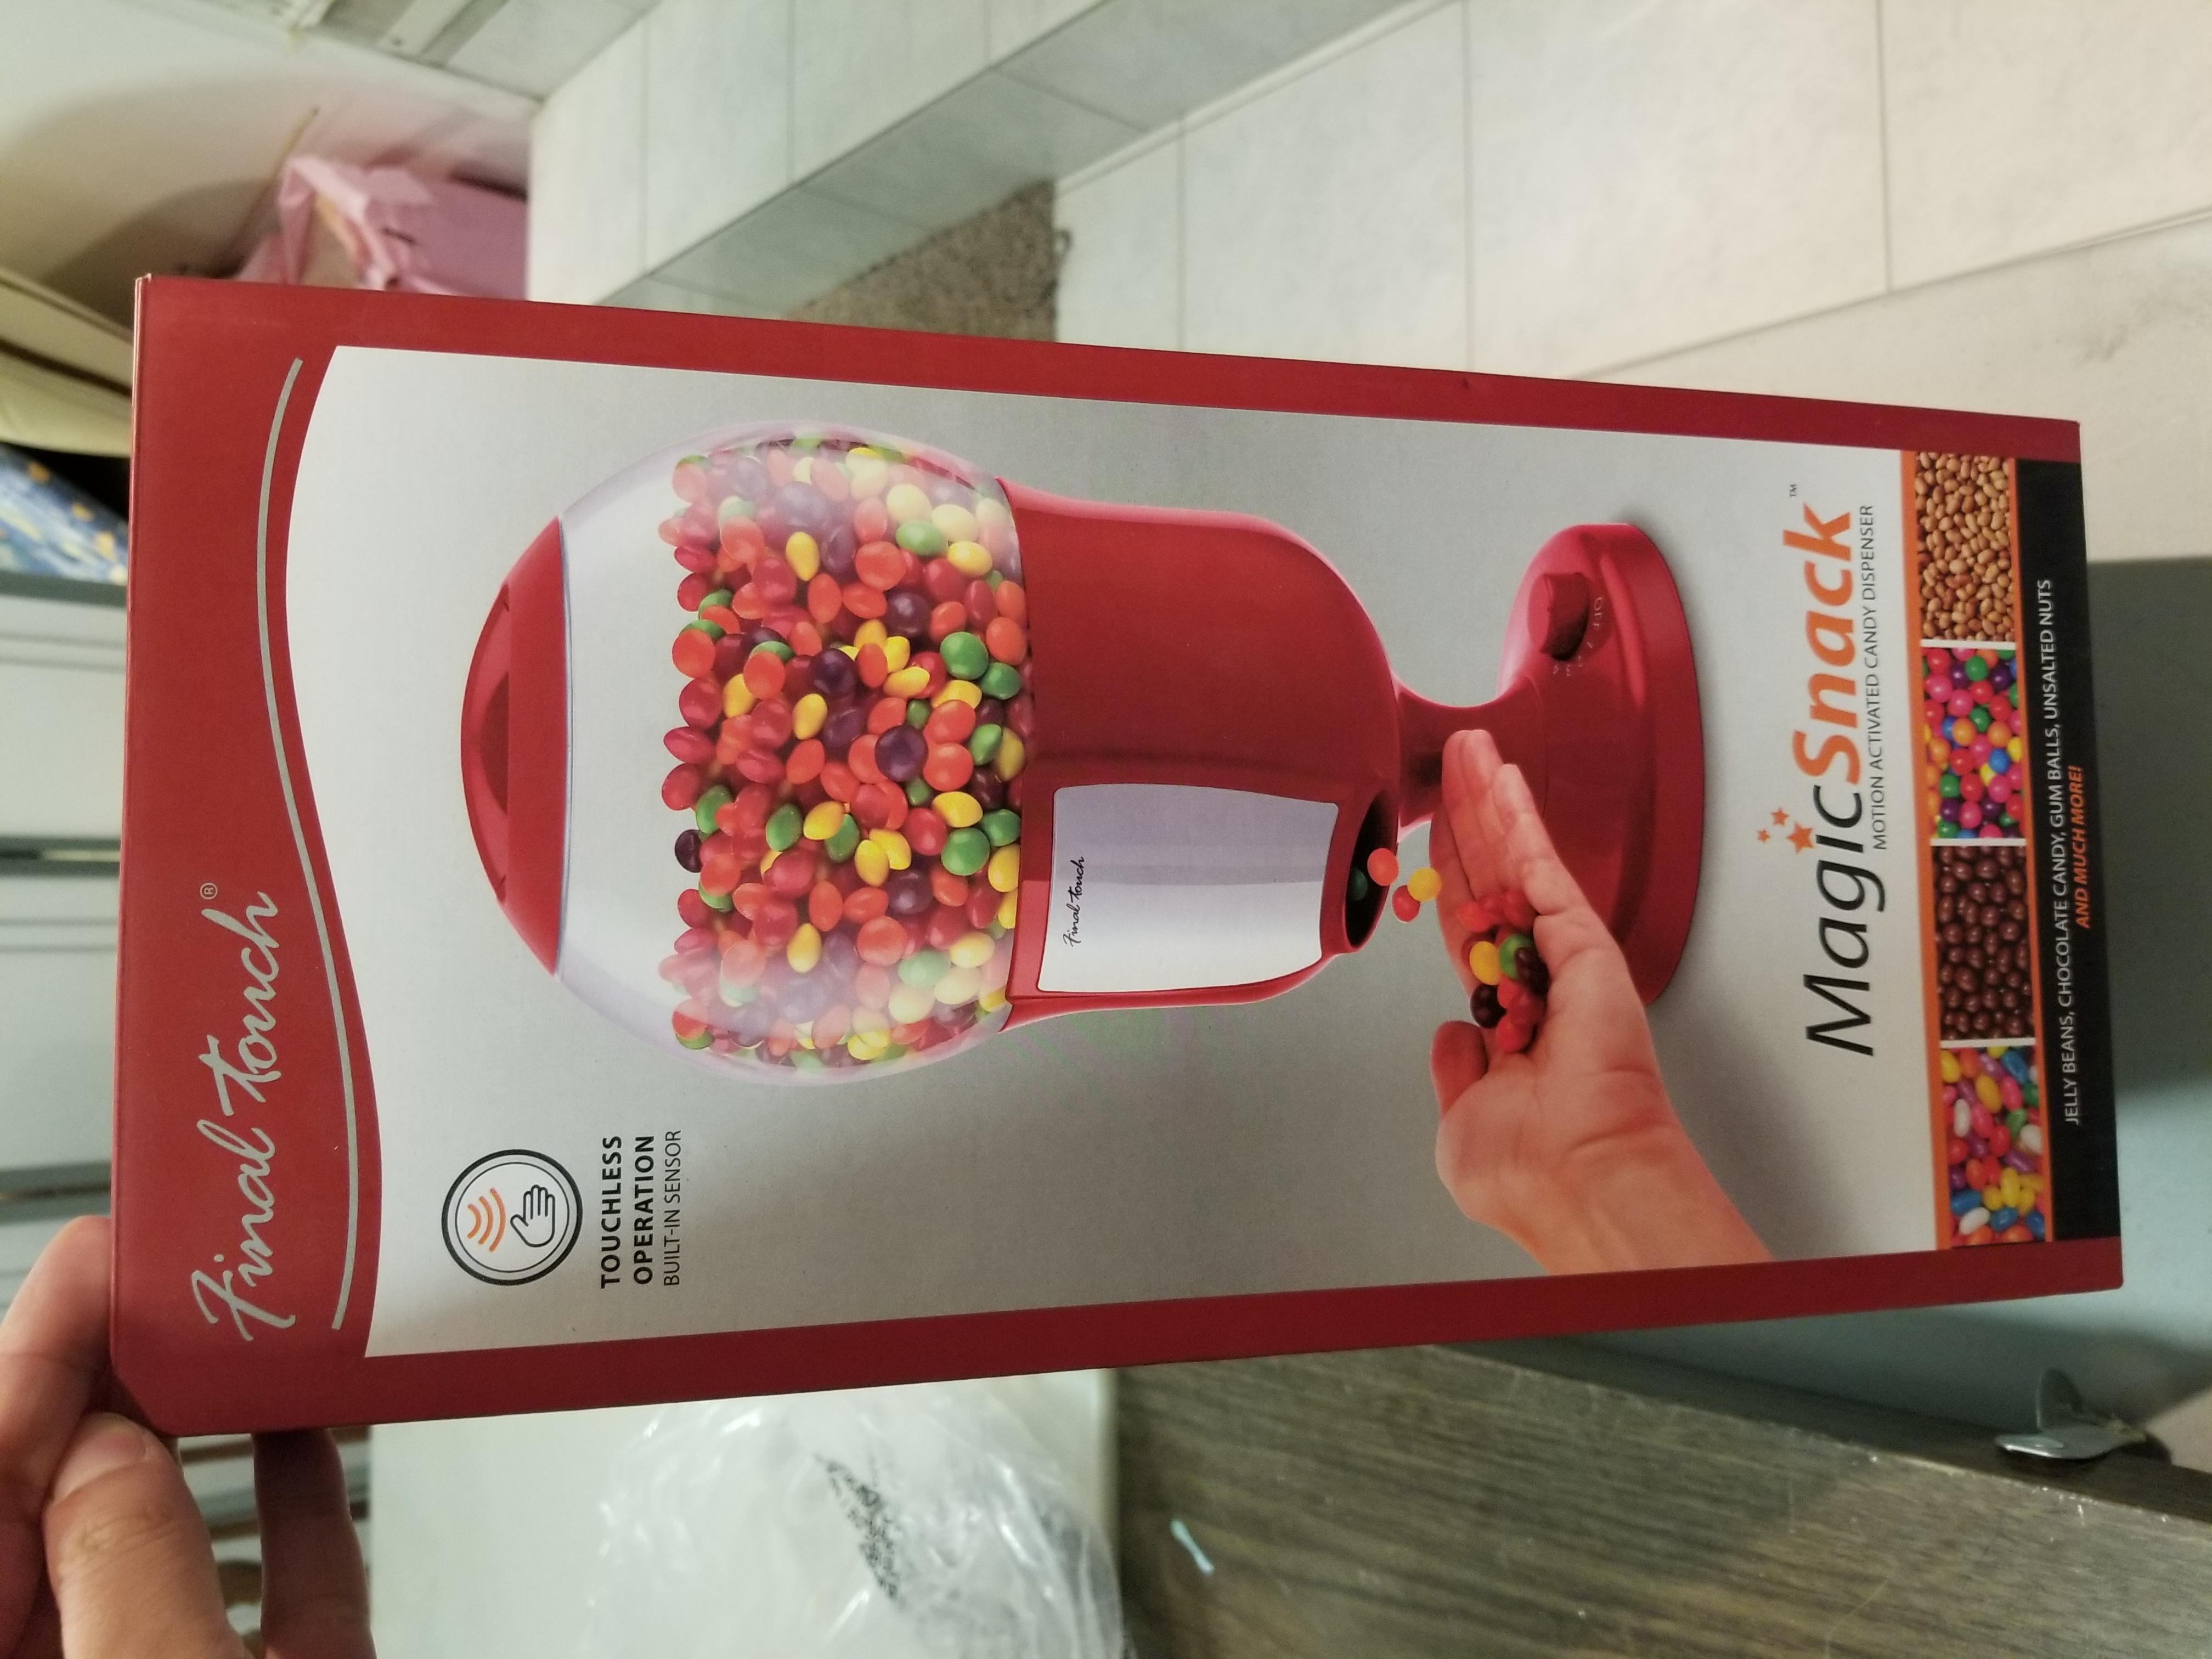 Magic Snack motion activated candy dispenser